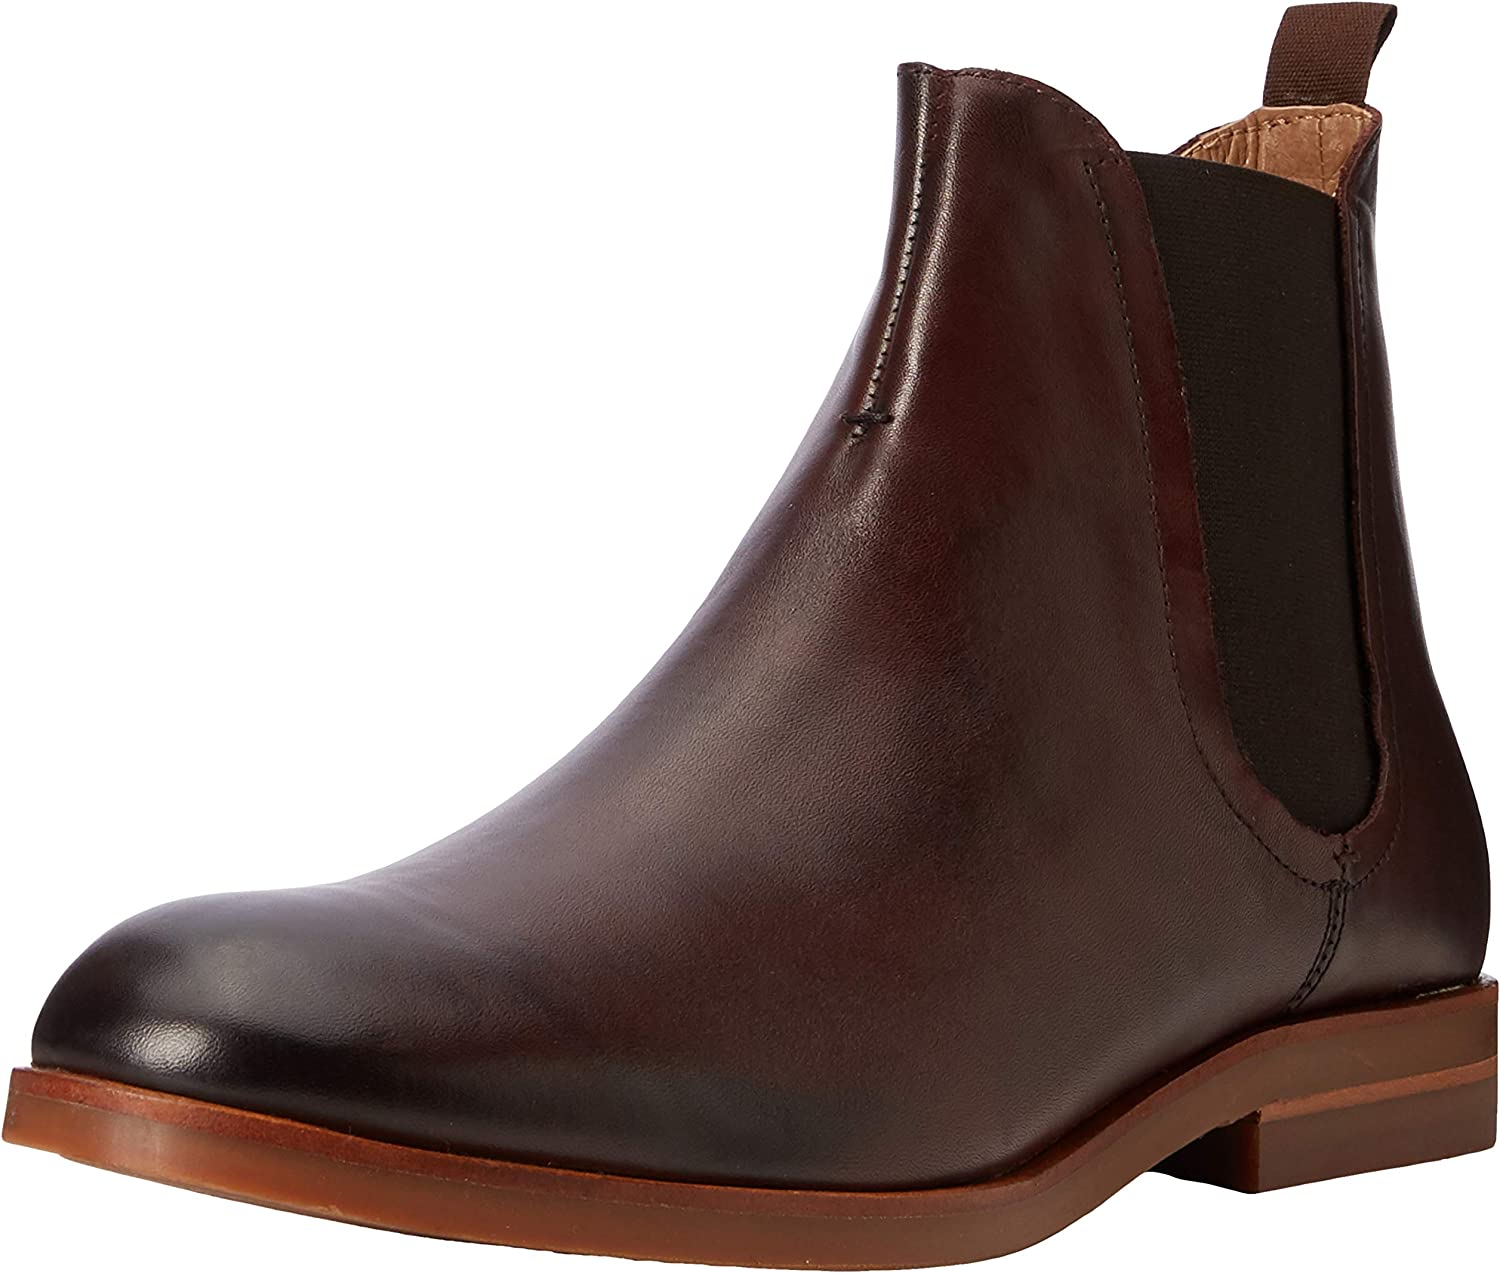 H by Hudson Adlington Leather, Botas Chelsea para Hombre